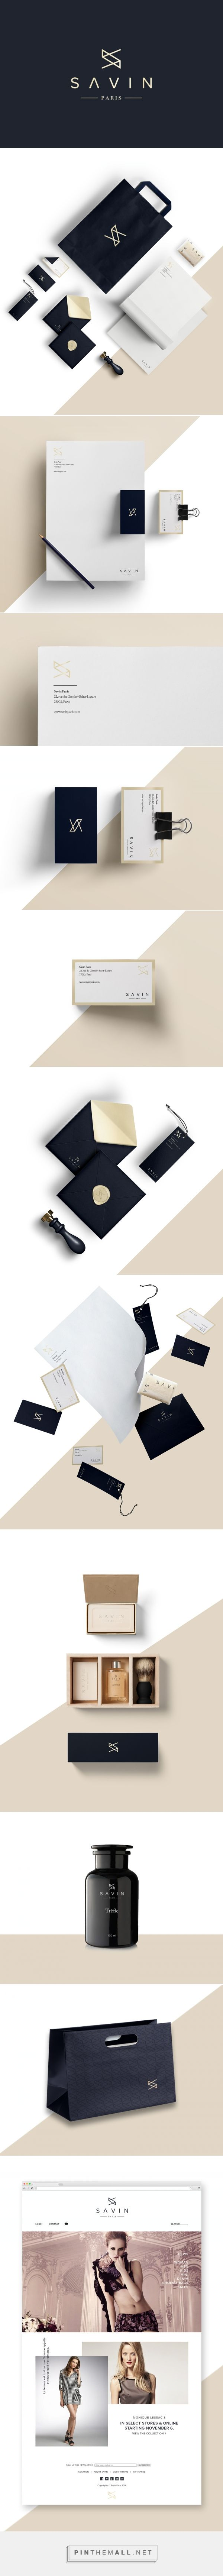 Savin Paris - fashion apparel on Behance - branding stationary corporate identity visual design label business card letterhead bag packaging website enveloppe logo minimalistic graphic design